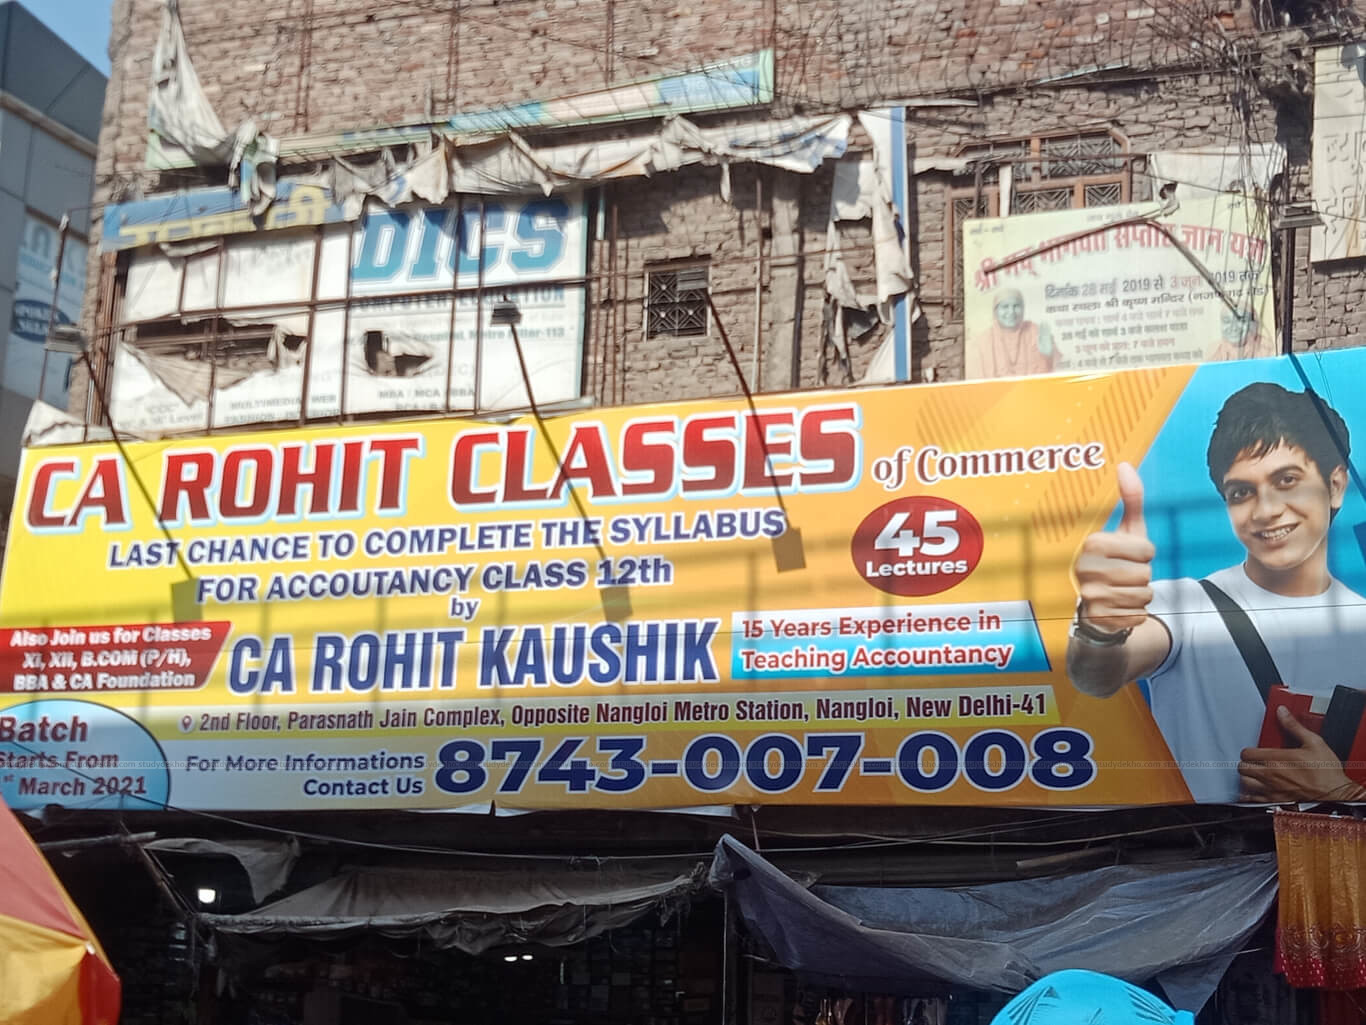 CA ROHIT CLASSES OF COMMERCE Logo